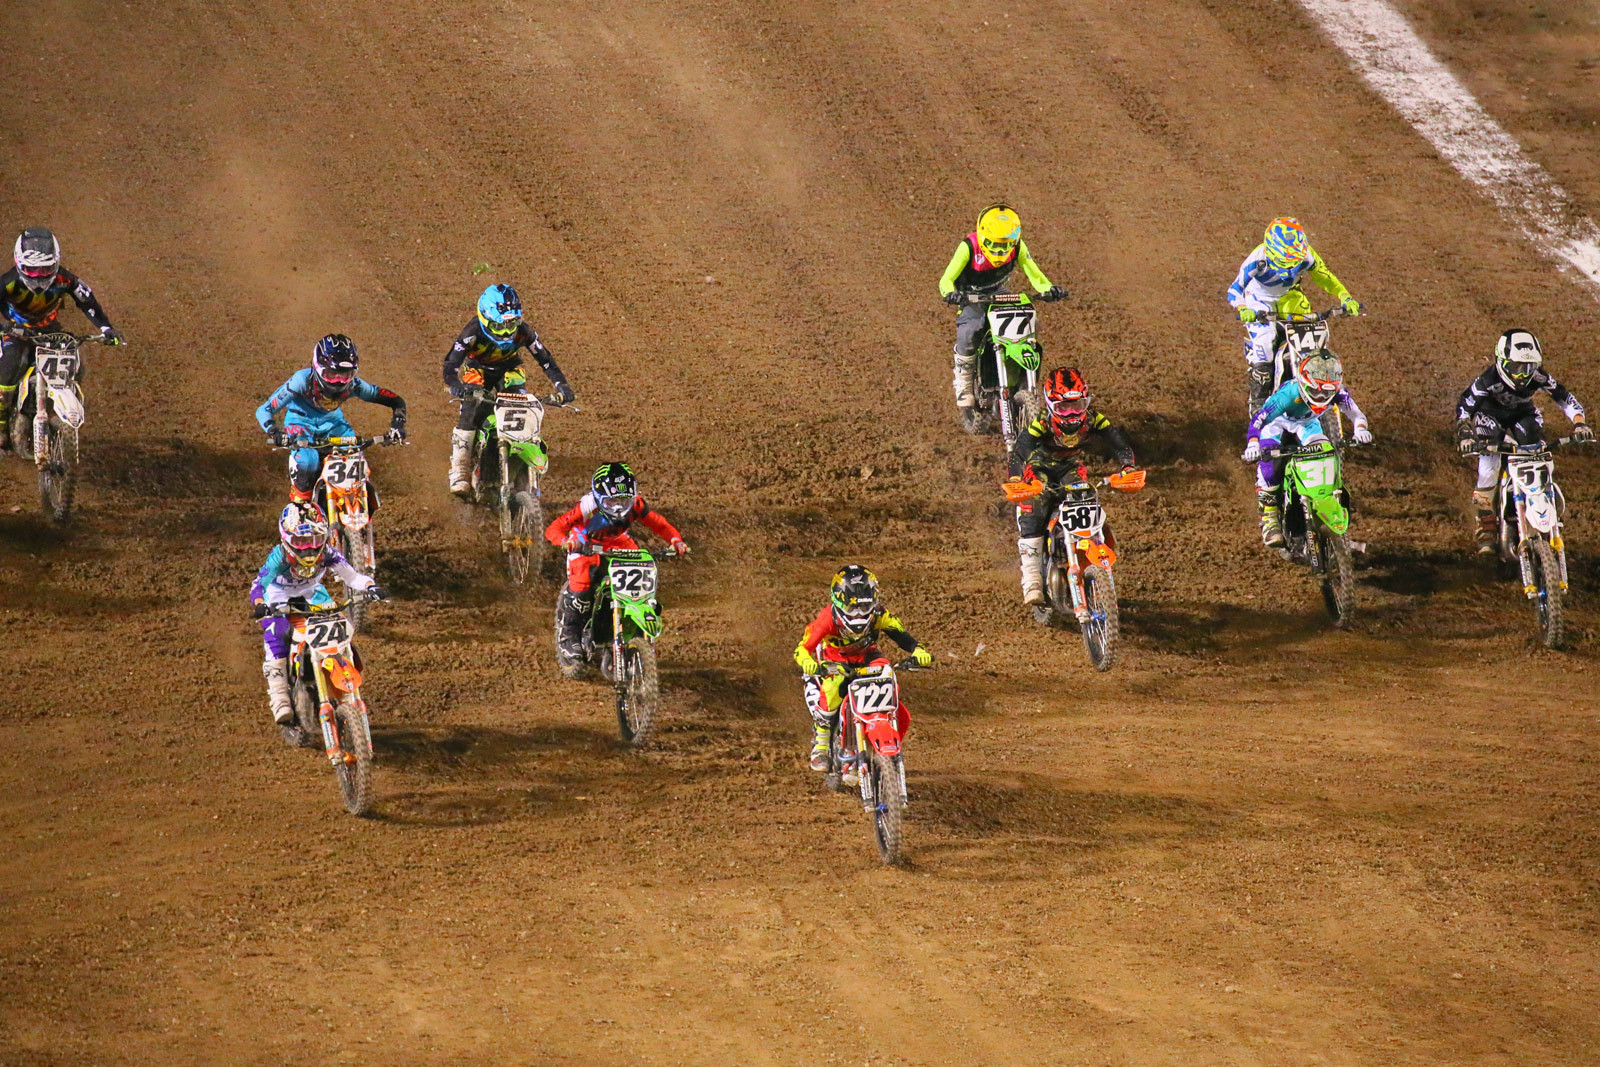 Supermini Race Two - Photo Blast: Monster Energy Cup - Motocross Pictures - Vital MX